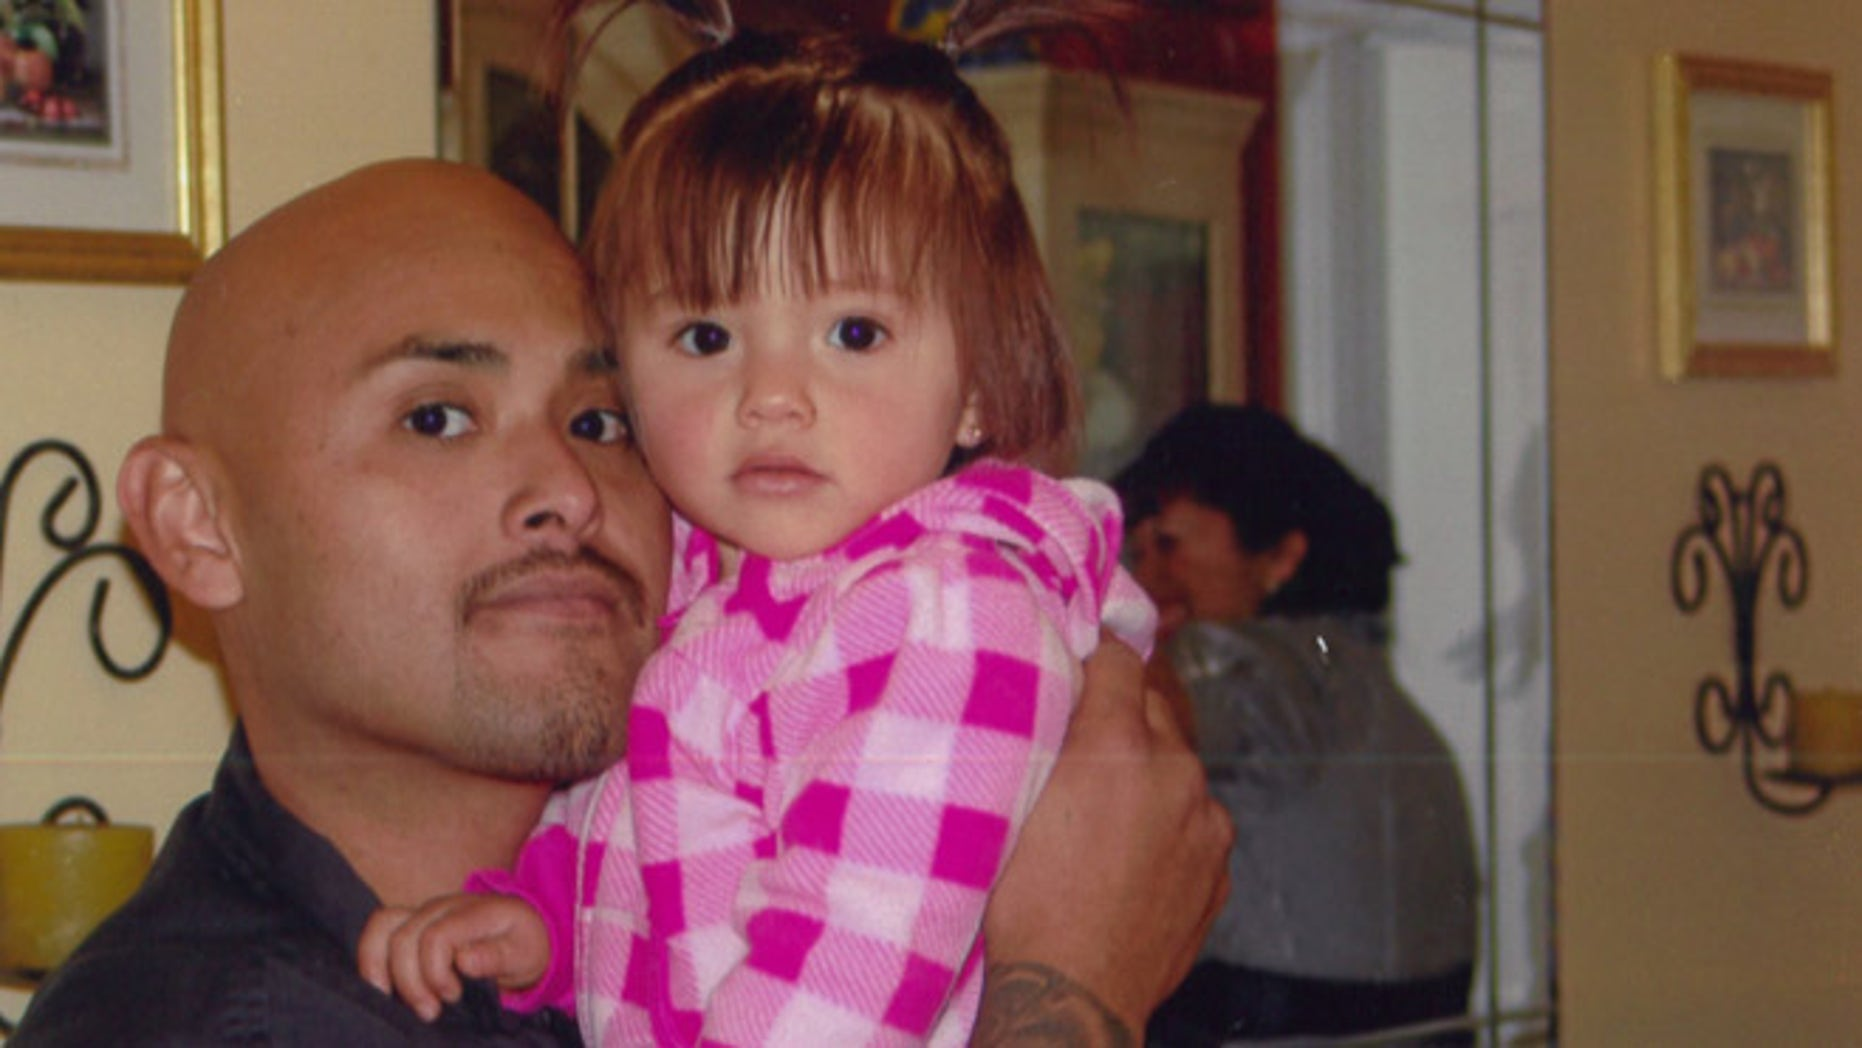 This undated photo provided by Galipo Law shows Benny Herrera holding his daughter, Abygail. A federal appeals court says a dashboard video shows a California police officer shooting and killing a man less than a second after ordering him to show his hands. The court noted the video footage Friday, Sept. 16, 2016, in rejecting Tustin Police Officer Osvaldo Villareal's request to dismiss the wrongful death lawsuit against him. The 9th U.S. Circuit Court of Appeals in San Francisco said Villareal couldn't have reasonably feared for his safety when he shot Herrera in December, 2011. (Galipo Law via AP)